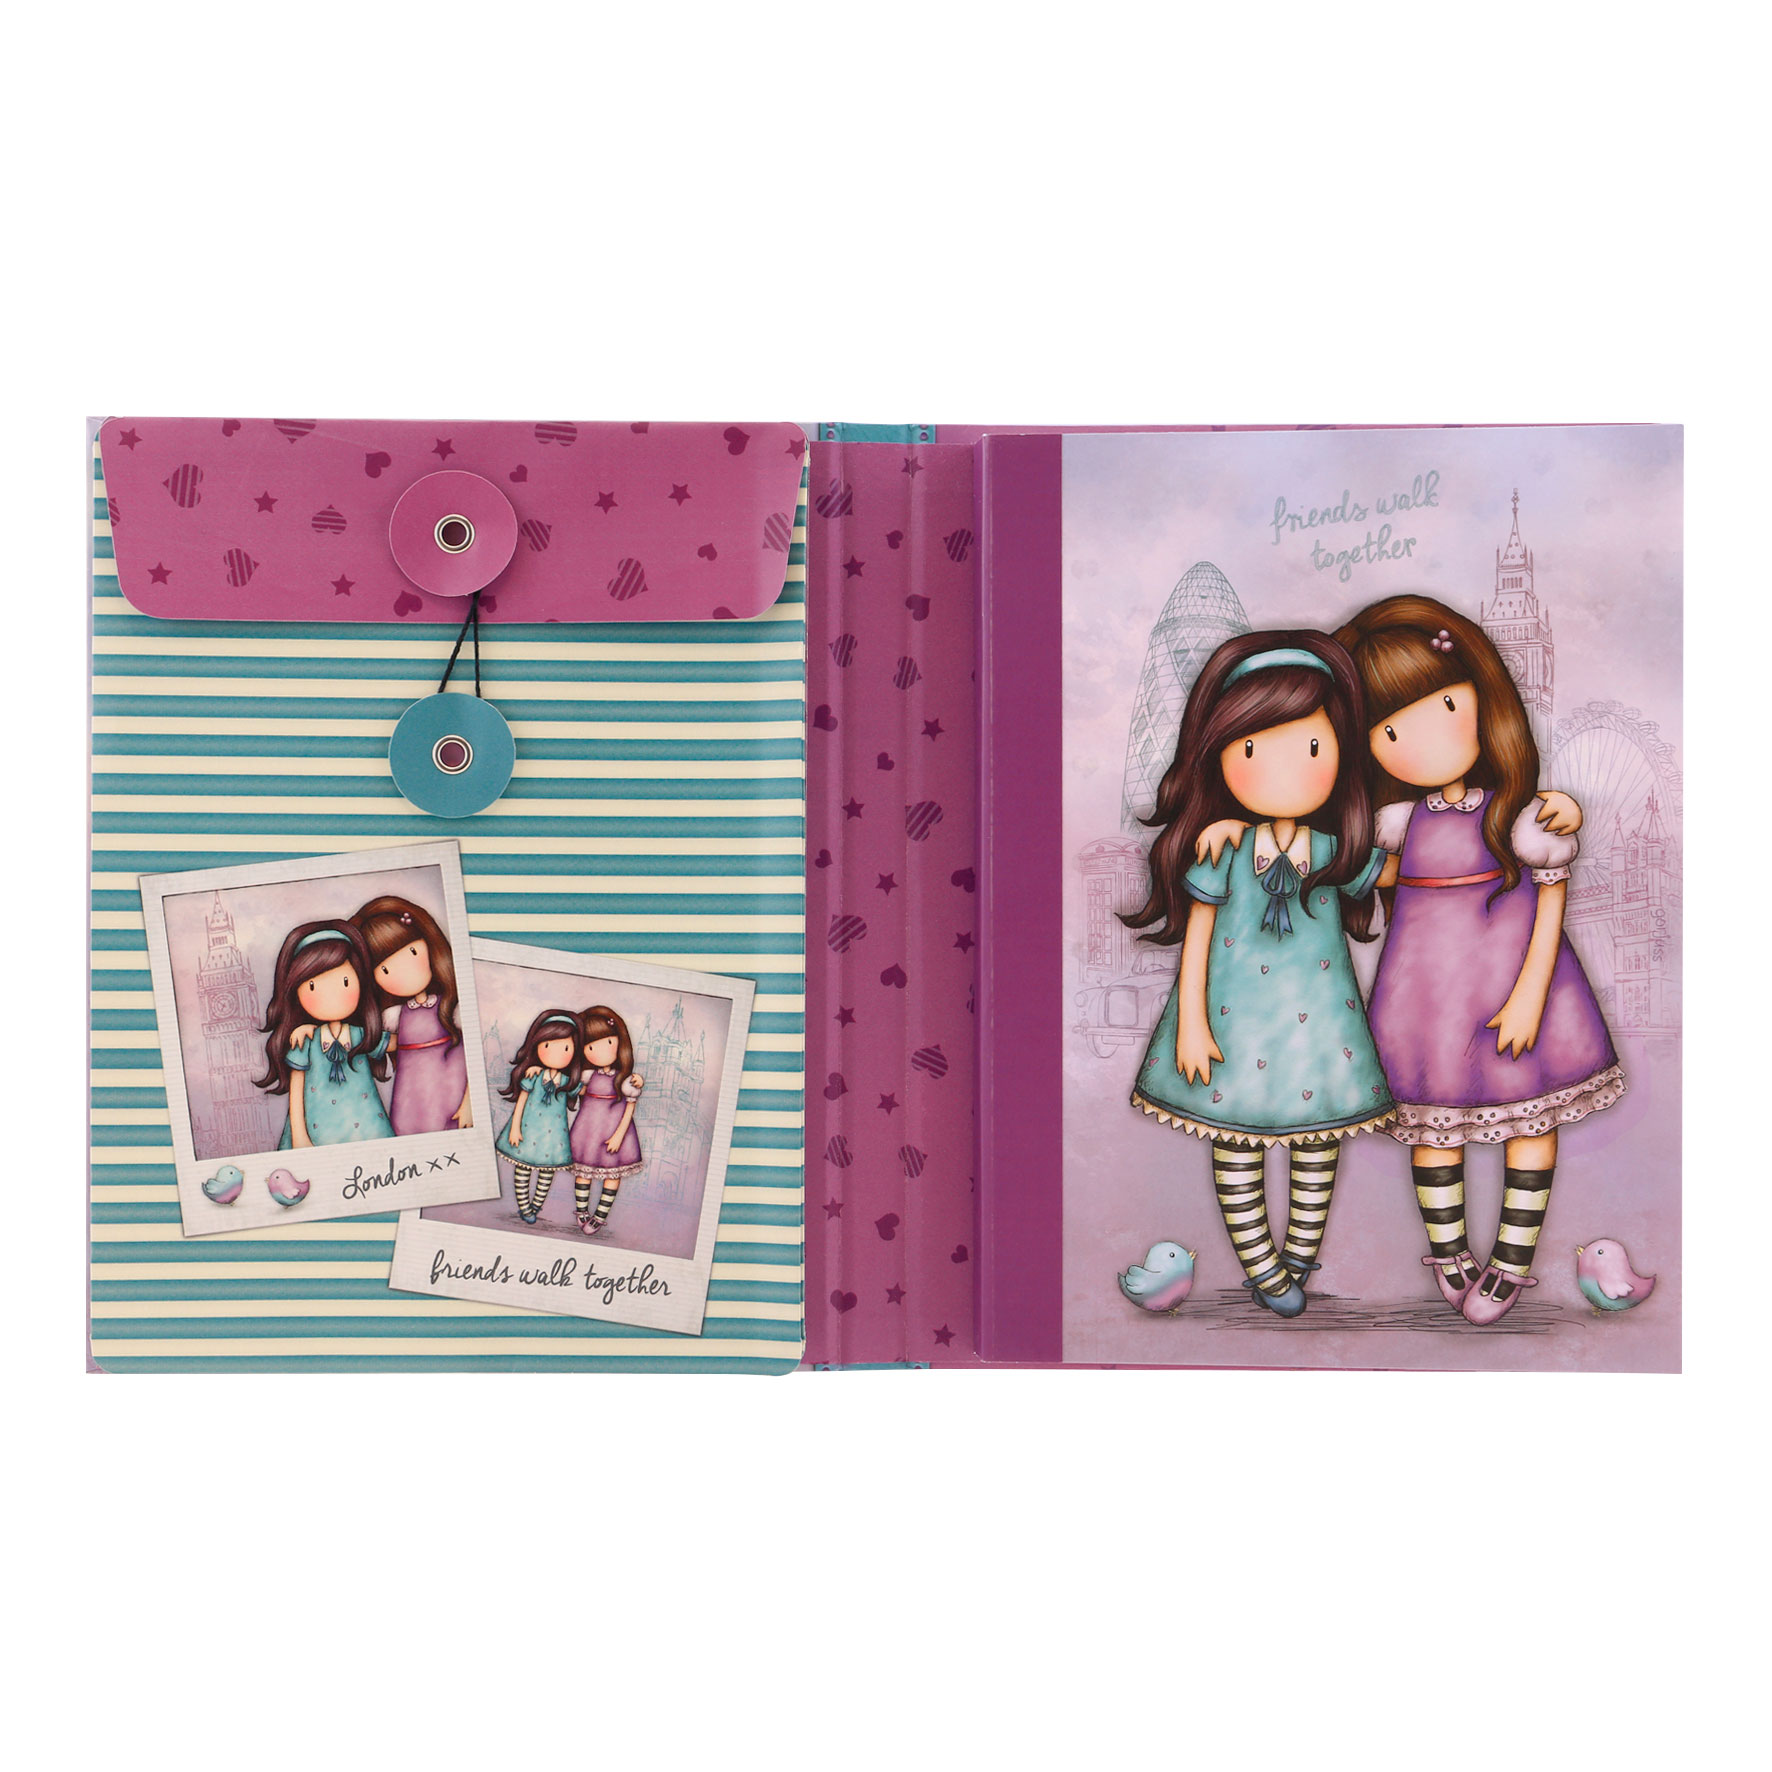 Gorjuss Cityscape Notebook with Stationery Set - Friends Walk Together (Inside)